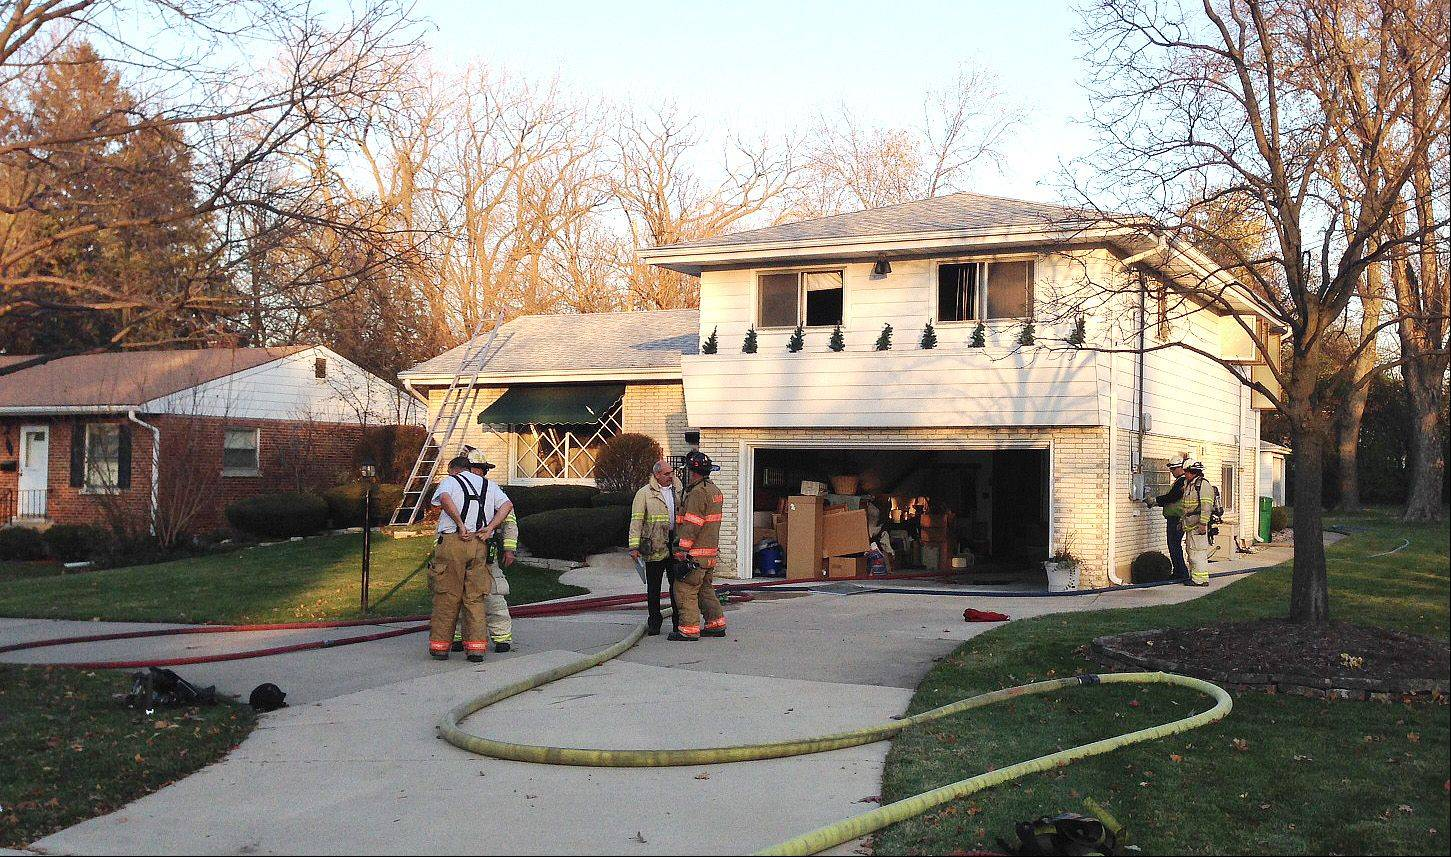 No injuries were reported Friday in a fire that forced a Lombard family from their home on the 200 block of Main Street.